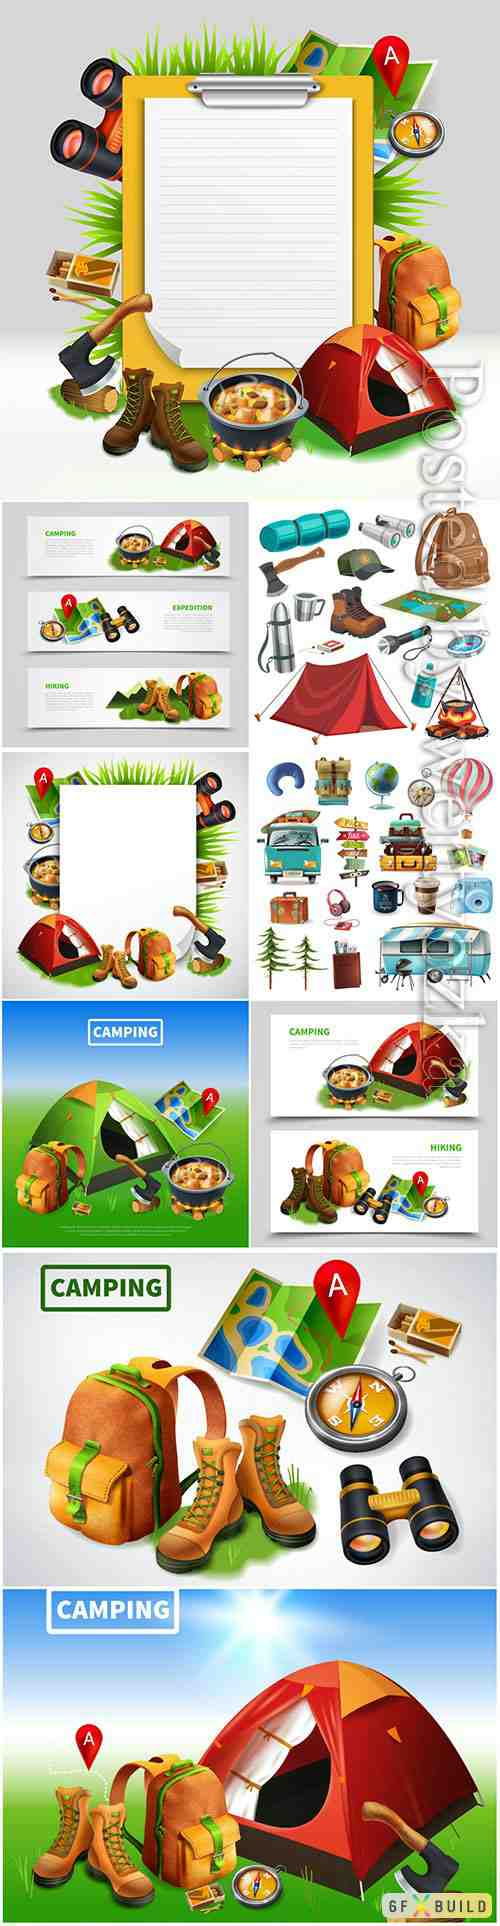 Camping, realistic, template, vector, illustrations